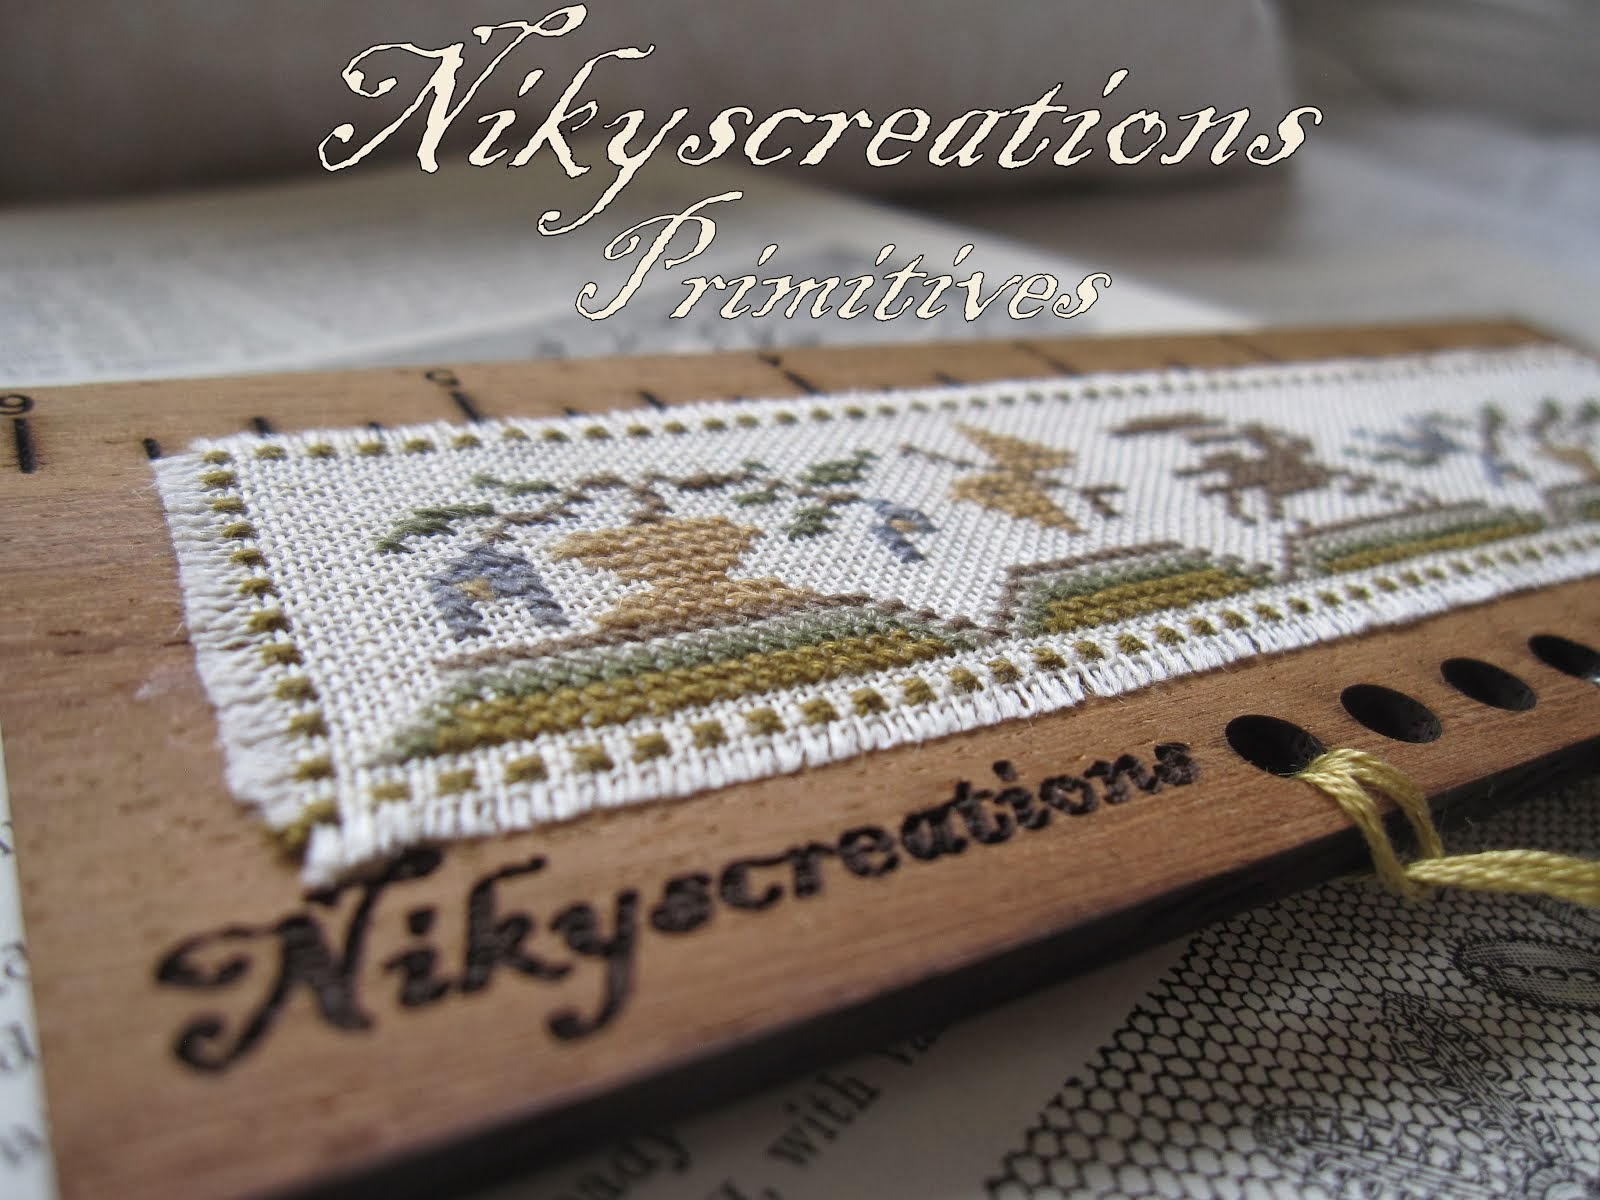 Nikyscreations